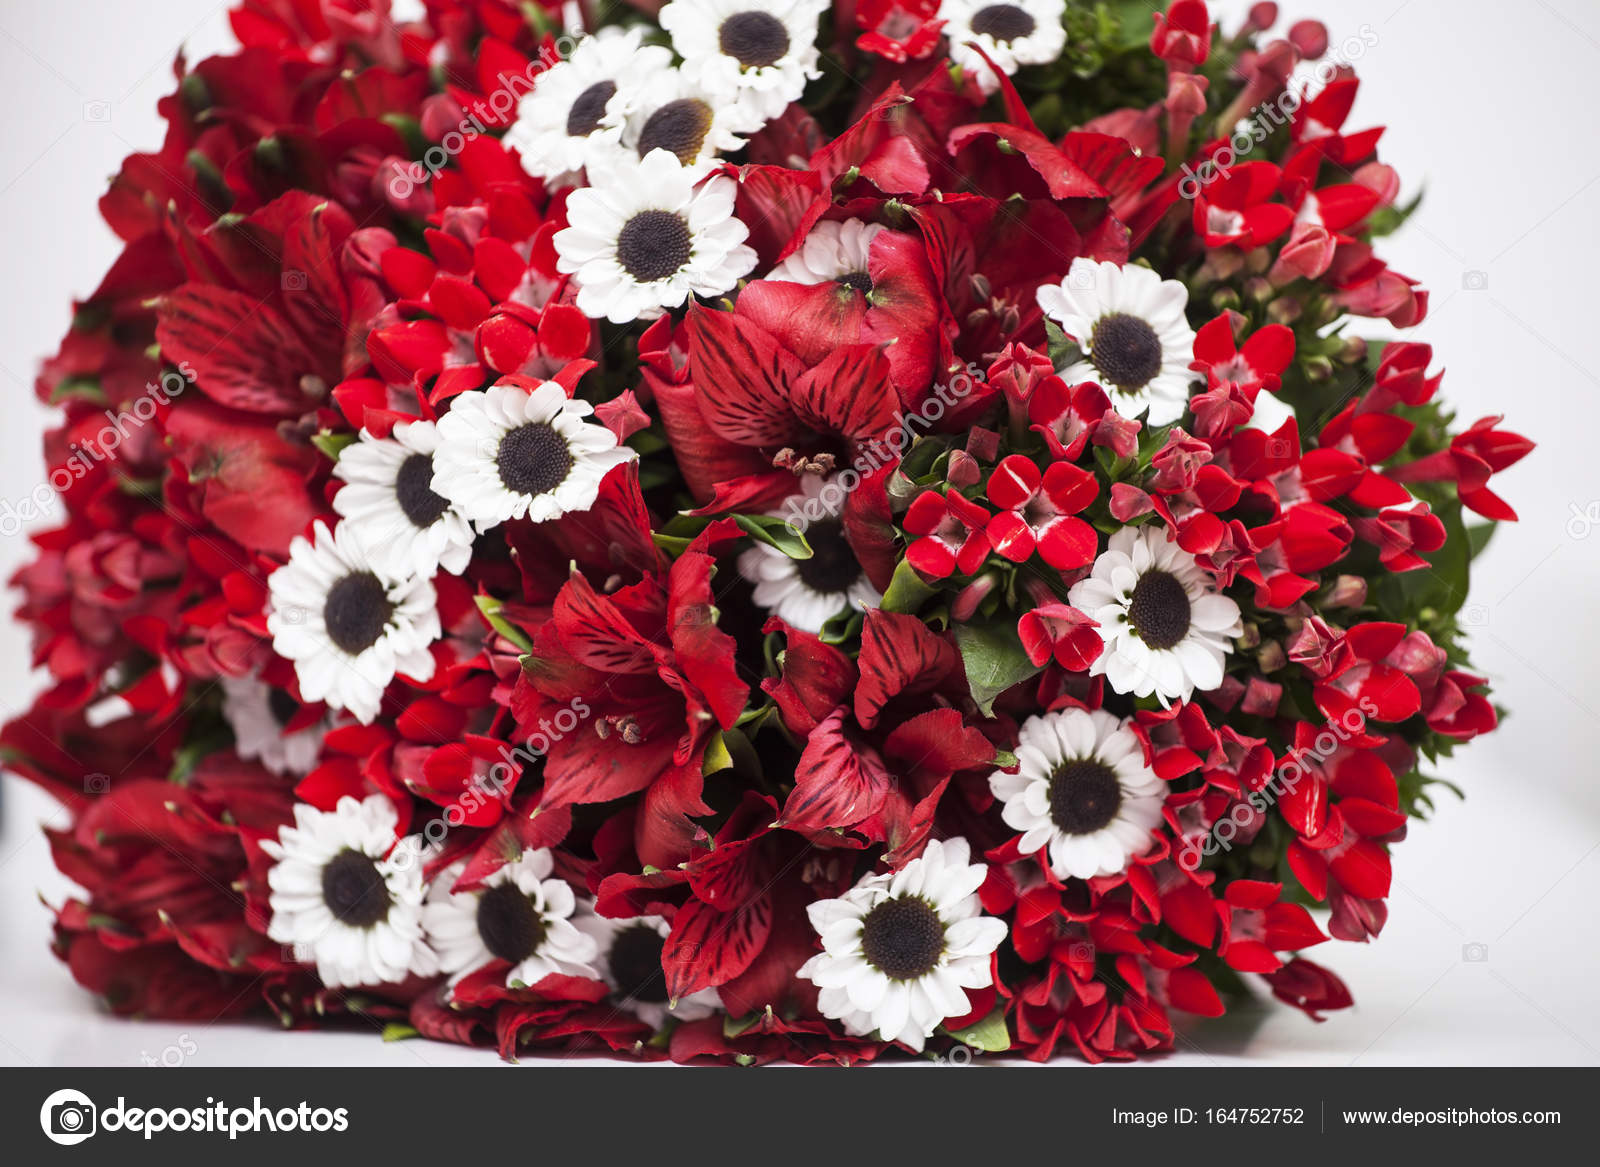 Red Black And White Wedding Flowers Red And White Flowers Stock Photo C Erika8213 164752752